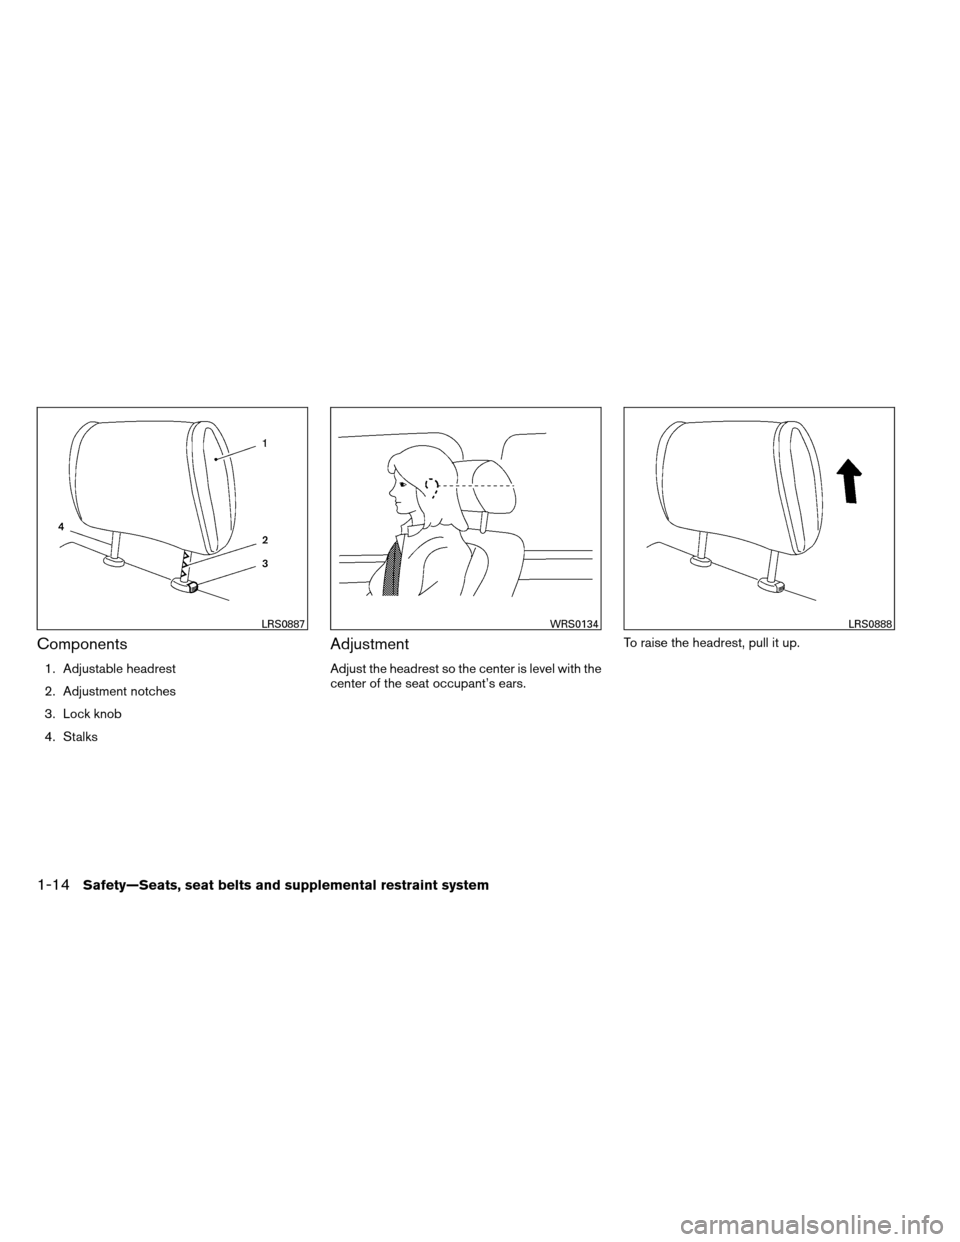 NISSAN ARMADA 2013 1.G Owners Guide Components 1. Adjustable headrest 2. Adjustment notches 3. Lock knob 4. Stalks Adjustment Adjust the headrest so the center is level with the center of the seat occupant's ears.To raise the headrest